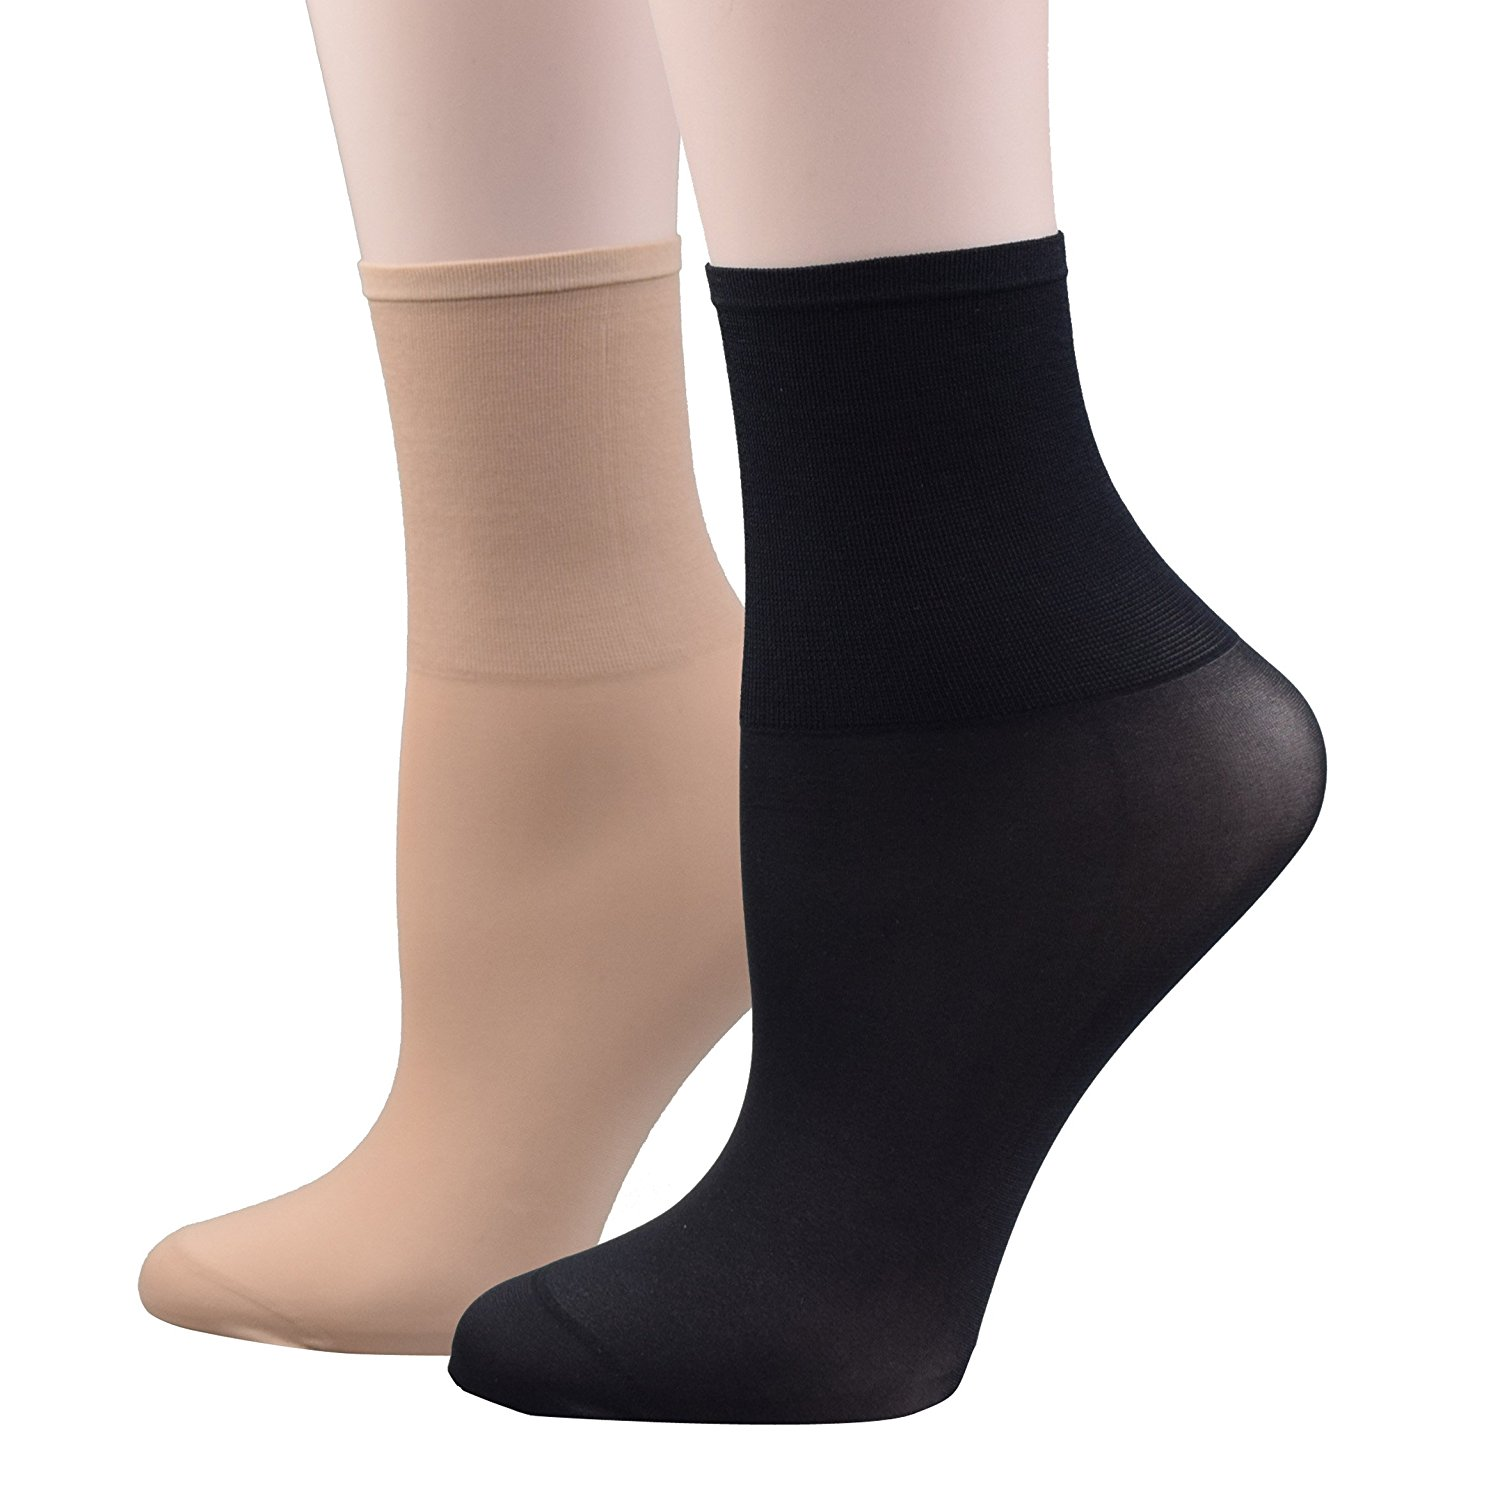 cc5d967a5 Get Quotations · Fitu Women's 12 Pairs Nylon Ankle High Tights Hosiery Socks